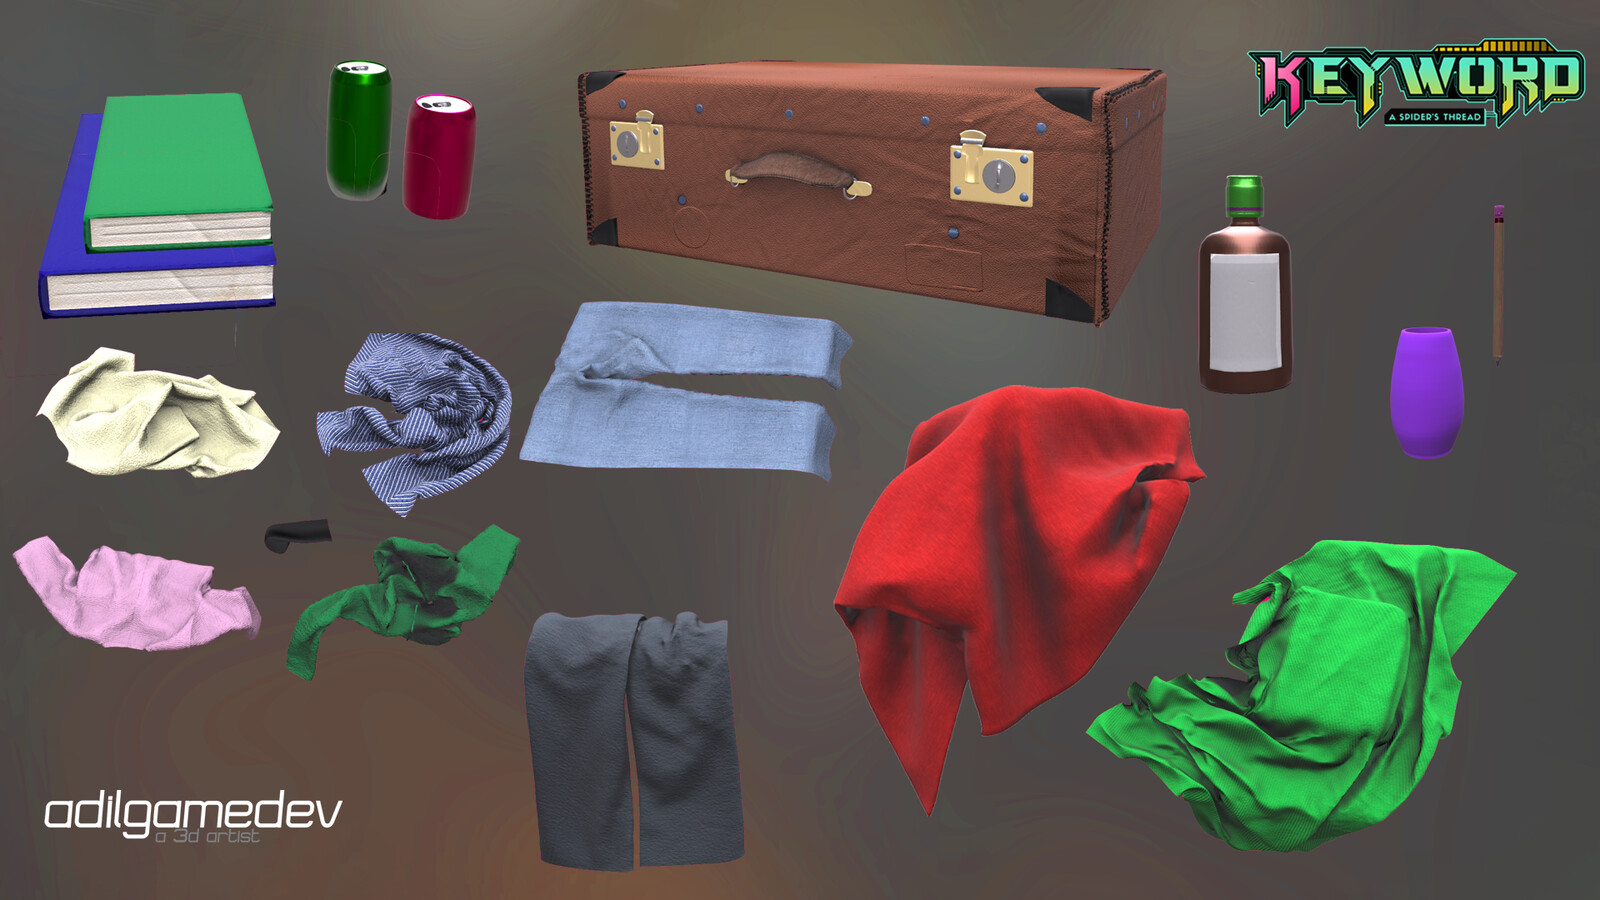 Some props including the clothing (other than blanket)